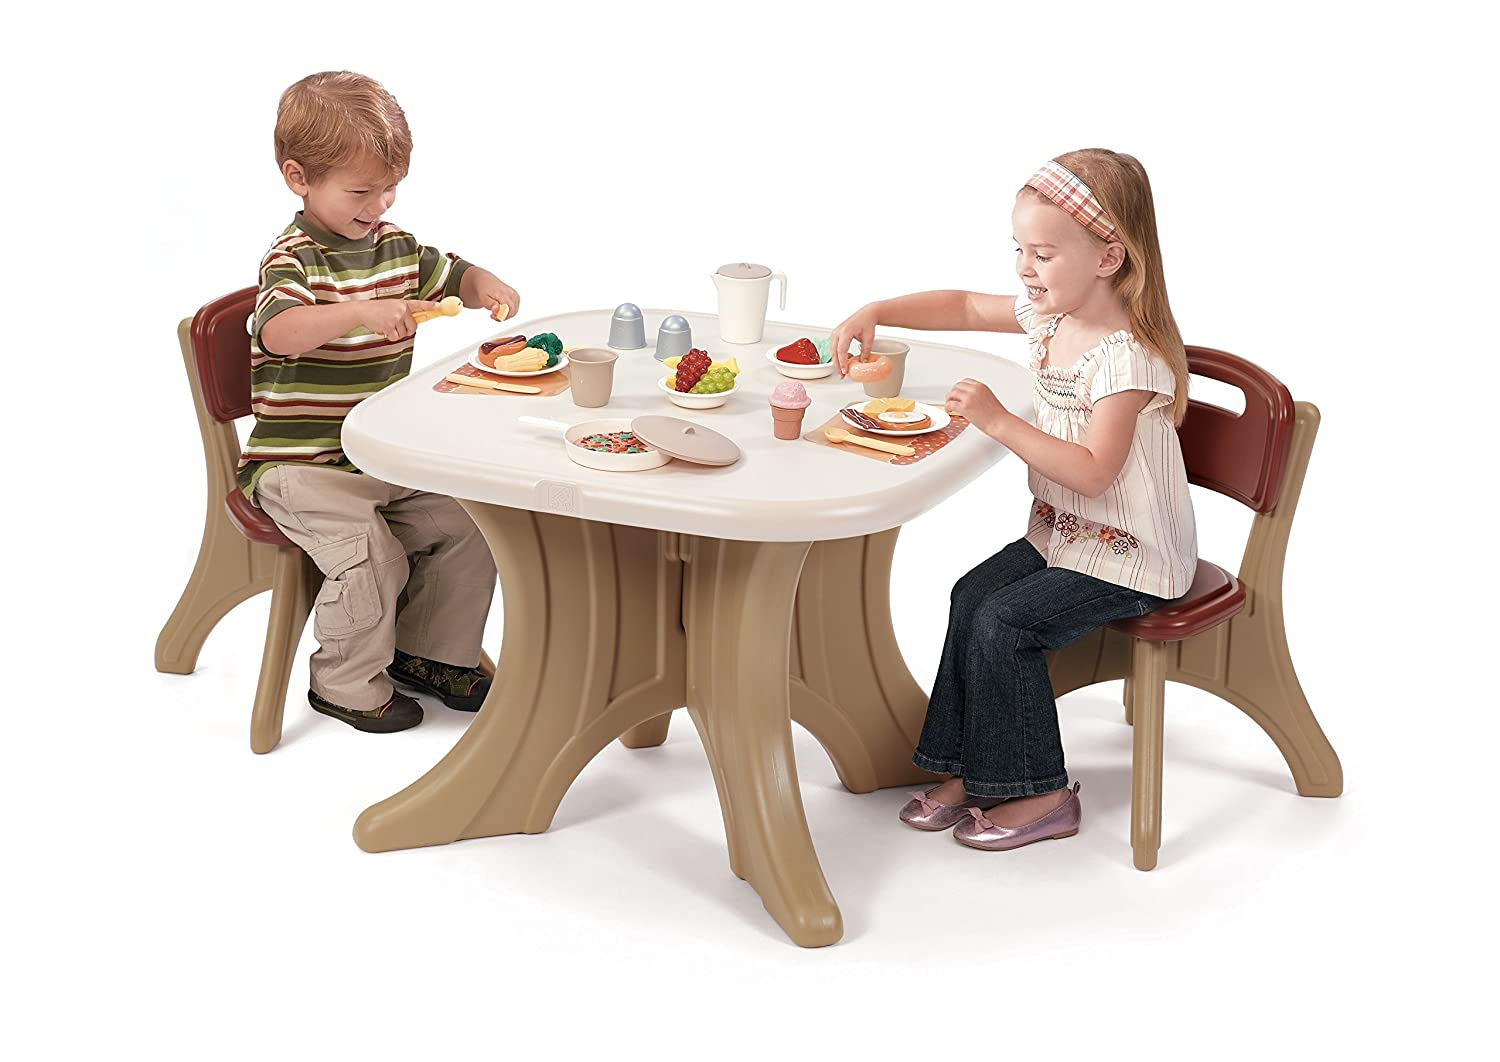 Amazon.com: Step2 Traditions Table & Chairs Set: Toys & Games